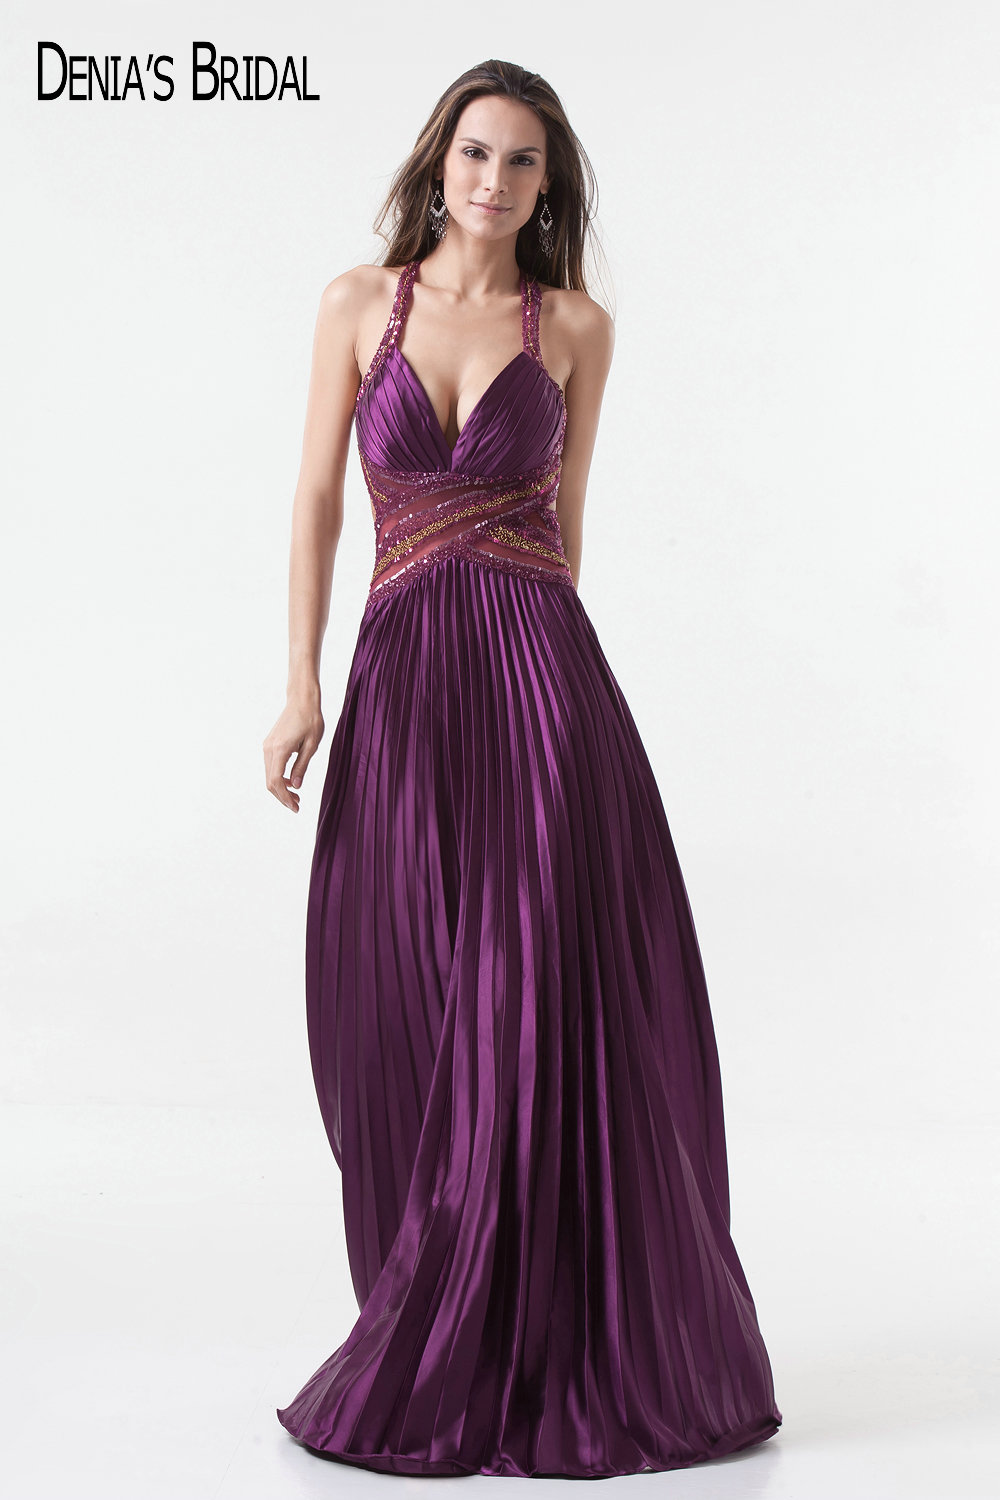 2017 Actual Images A-Line Evening Dresses with Sweetheart Neckline Pleats Floor-Length Beaded Sliver Prom Gowns